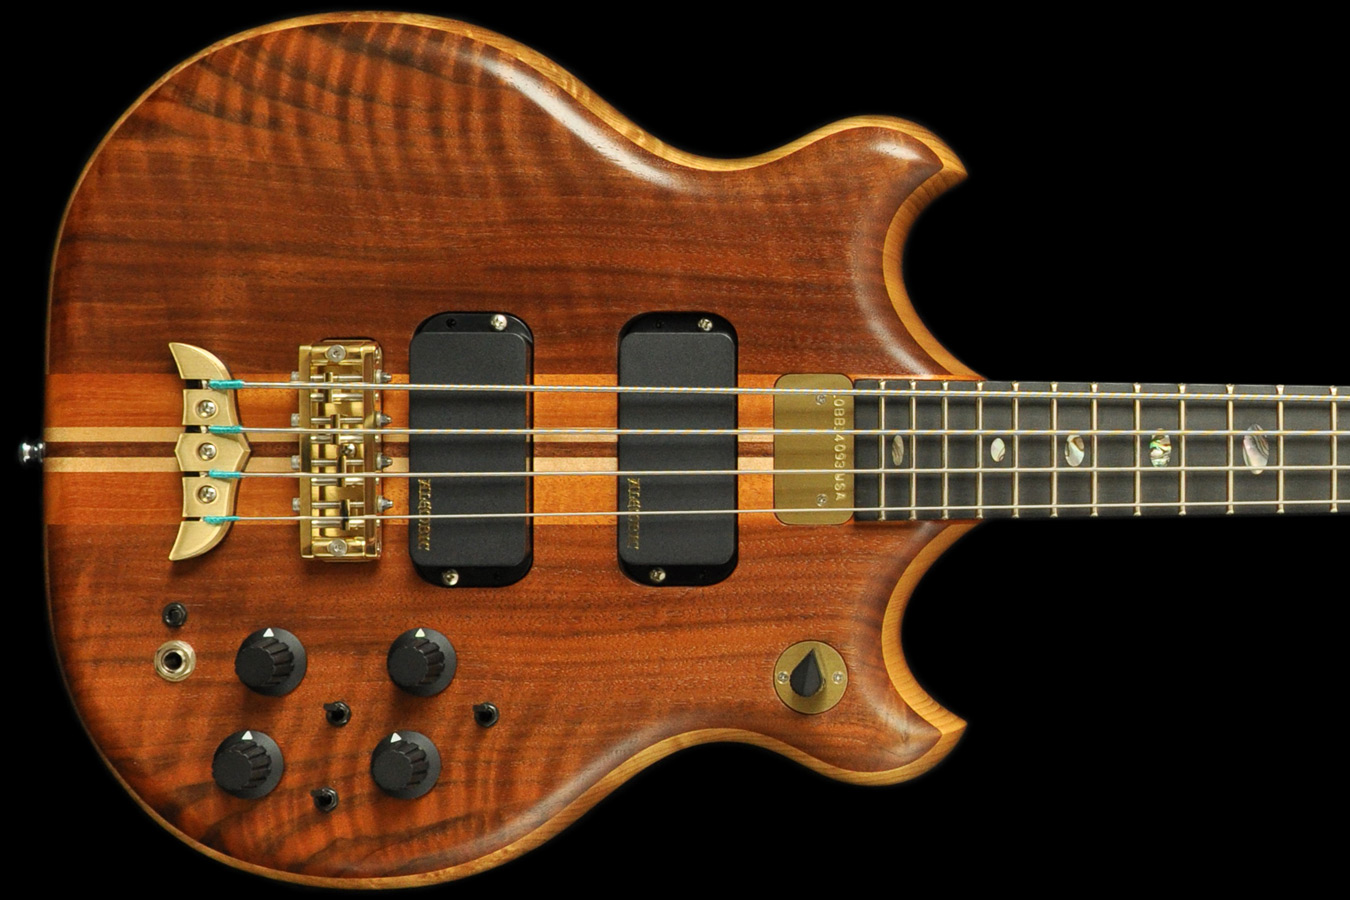 alembic brown bass archive high end bass guitars amps bass strings. Black Bedroom Furniture Sets. Home Design Ideas